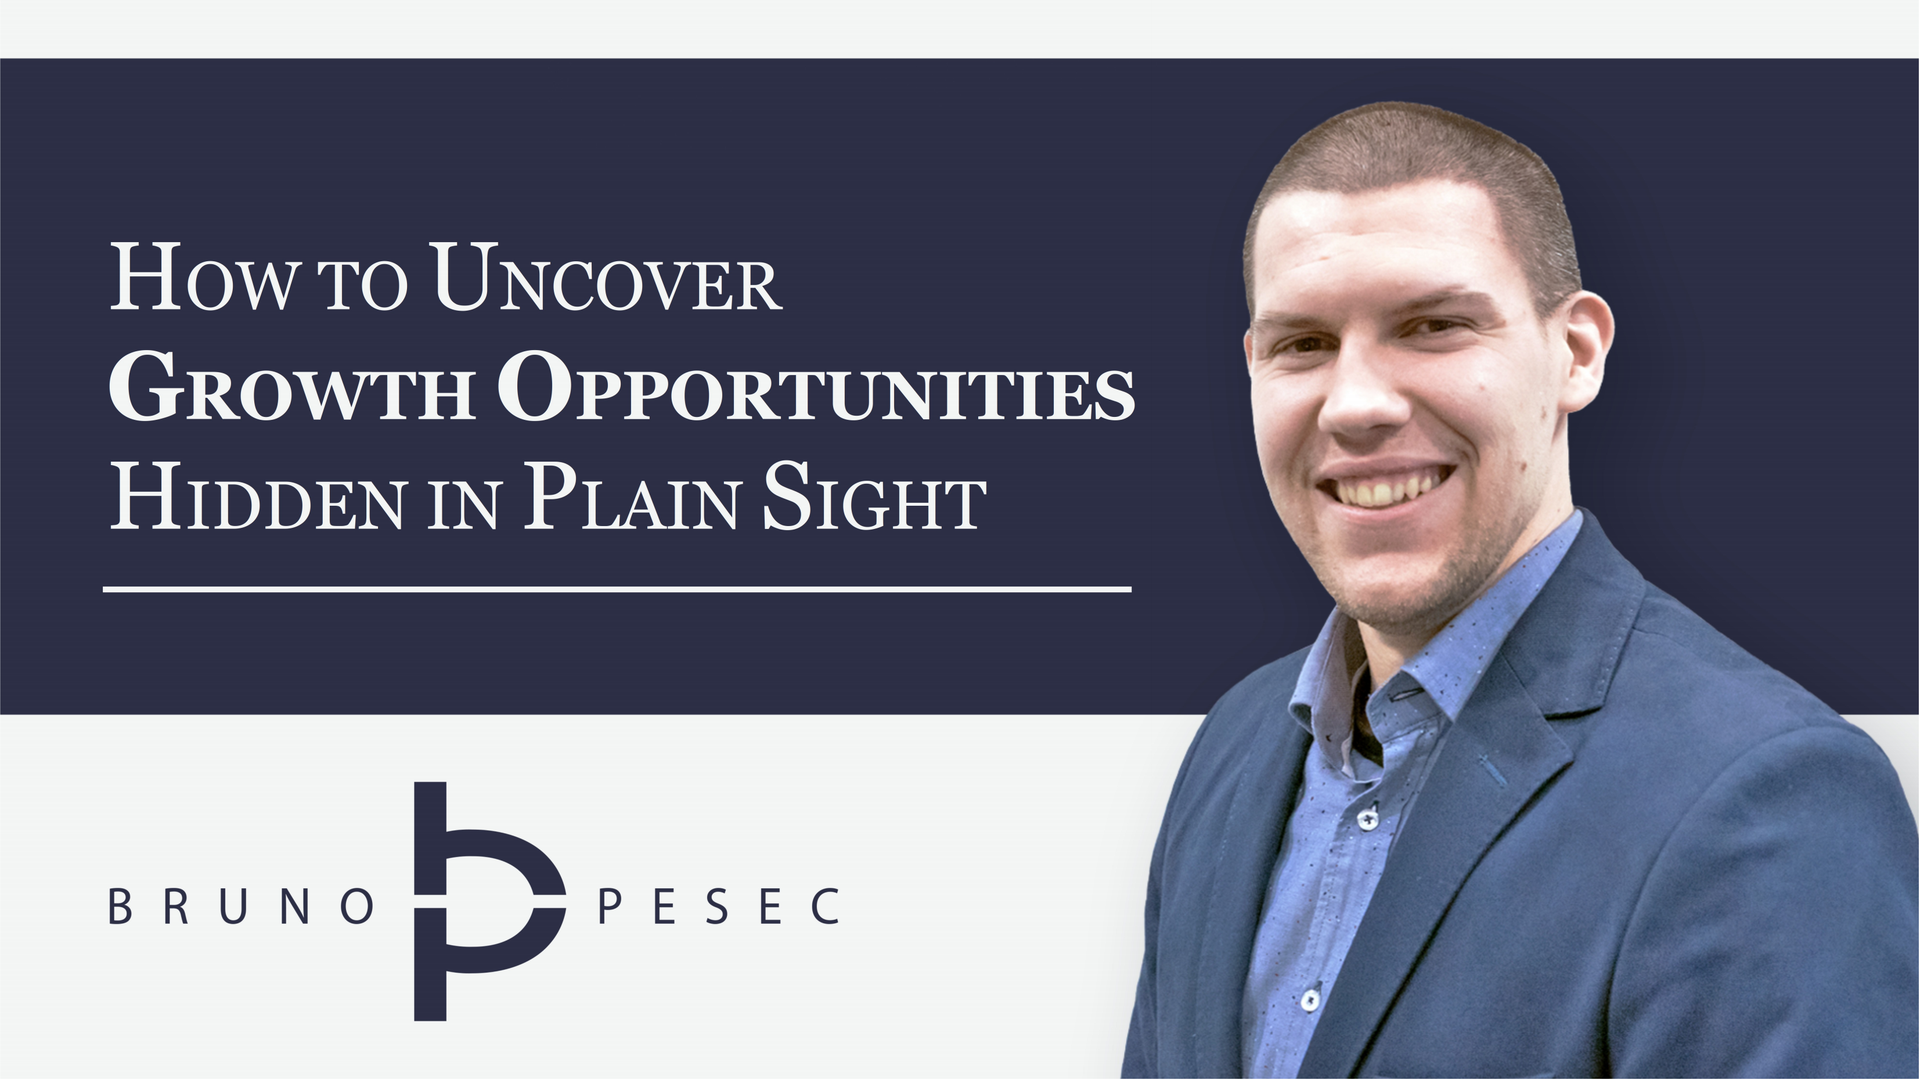 Corporate innovation webinar series by Bruno Pešec: How to uncover growth opportunities hidden in plain sight.